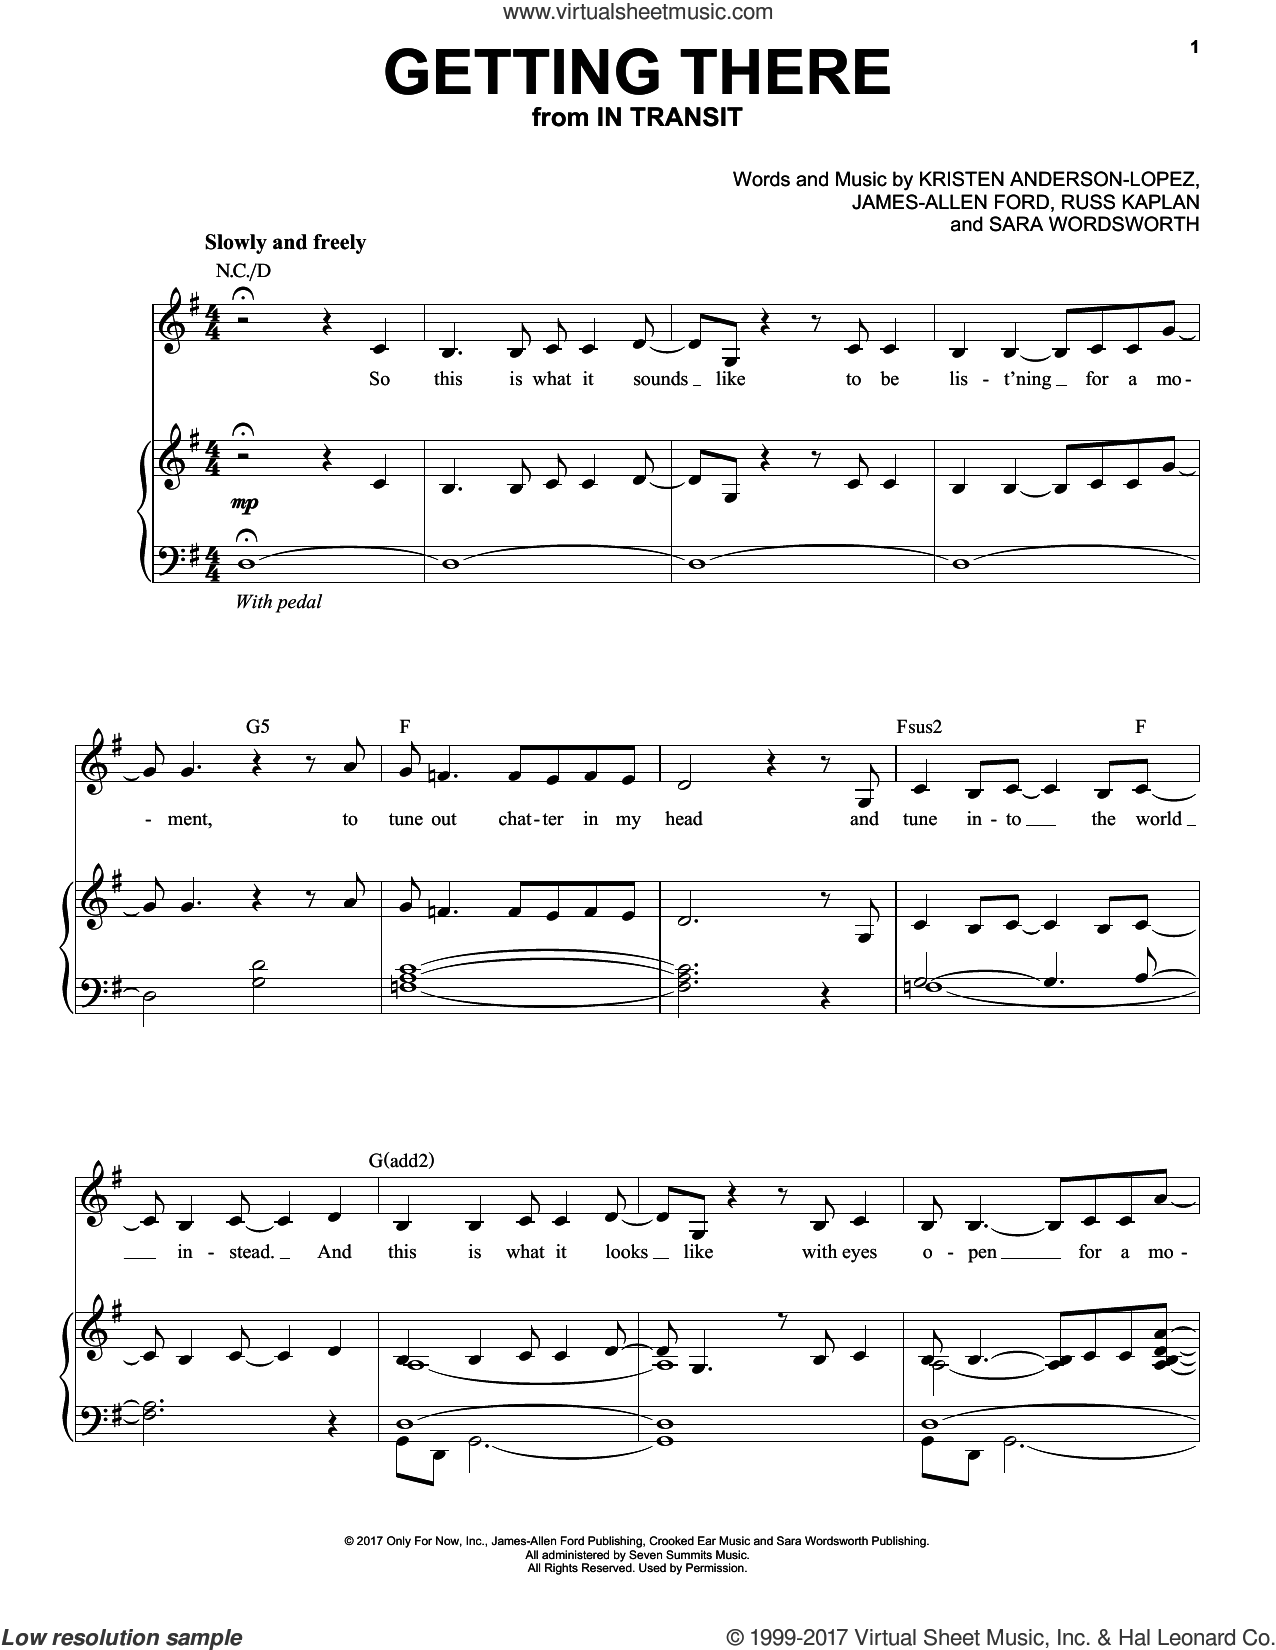 Getting There sheet music for voice, piano or guitar by Kristen Anderson-Lopez, James-Allen Ford, Russ Kaplan and Sara Wordsworth, intermediate